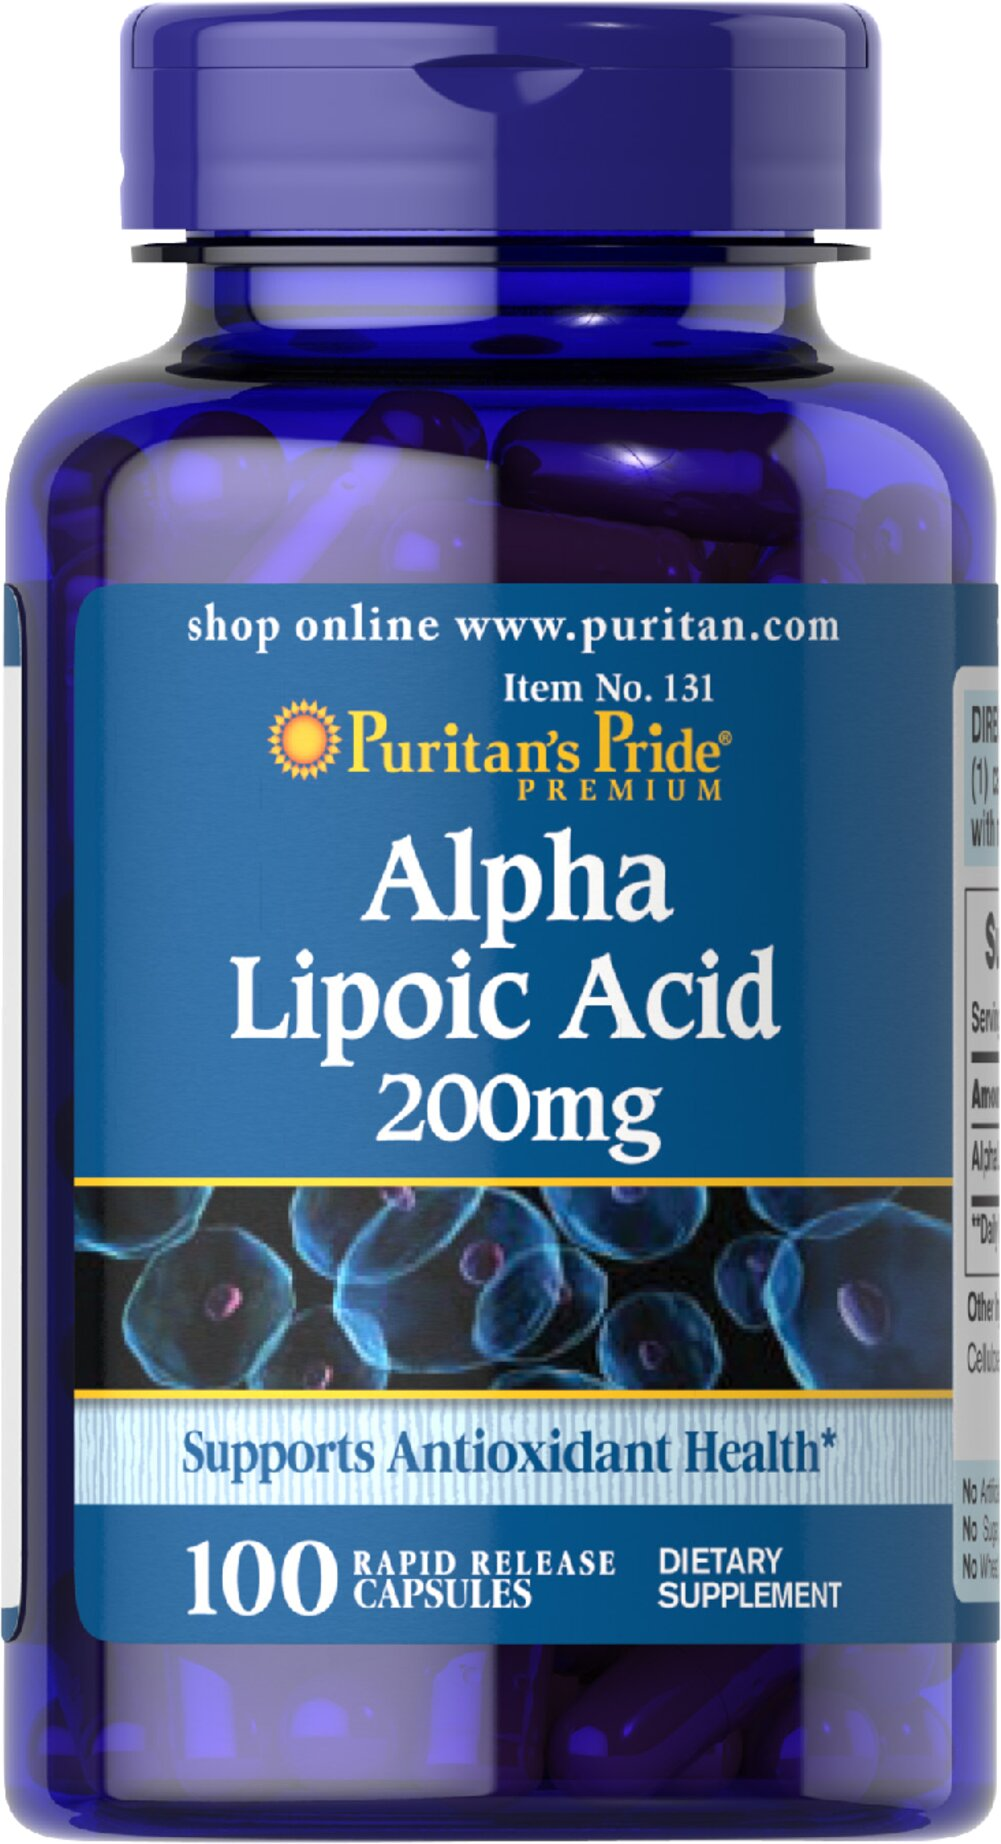 "Alpha Lipoic Acid 200 mg <p>Alpha Lipoic Acid (ALA) helps metabolize sugar, especially in muscles, where it promotes energy.**</p><p>ALA is also beneficial for liver health, and helps to revitalize the underlying structure of the skin so it can look healthier and more radiant.**</p><p> ALA is often called the ""universal antioxidant"" for its ability to help neutralize cell-damaging free radicals.** </p> 100 Capsules 200 mg $18.99"